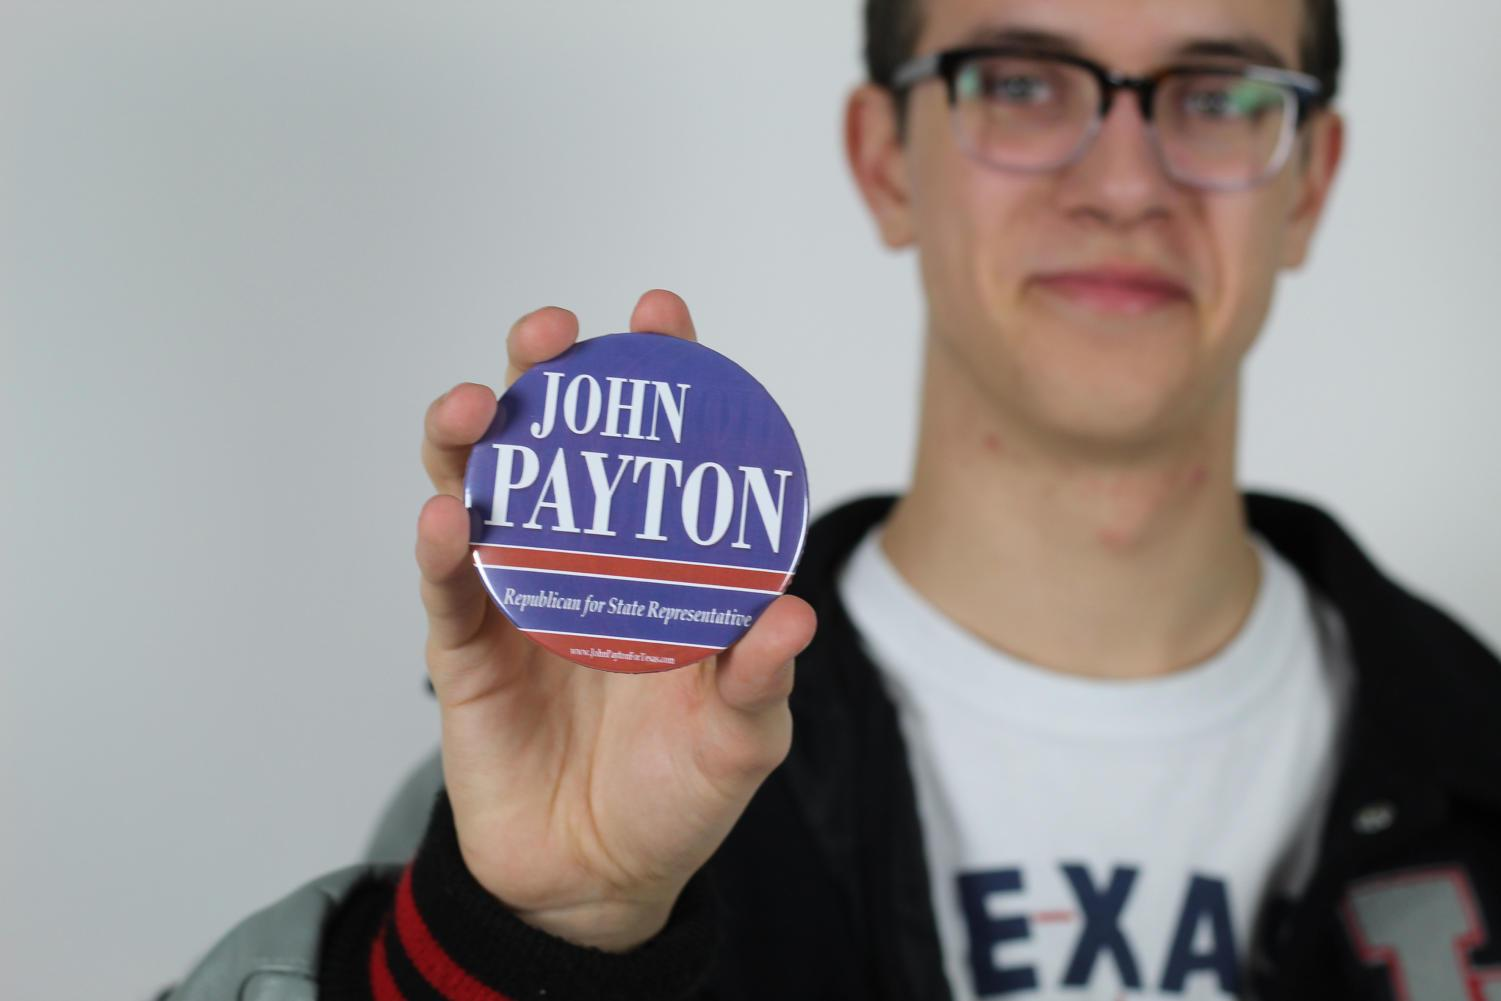 Senior Clay Parker manages a campaign for Judge John Payton. His teachers and parents support him in his commitments.